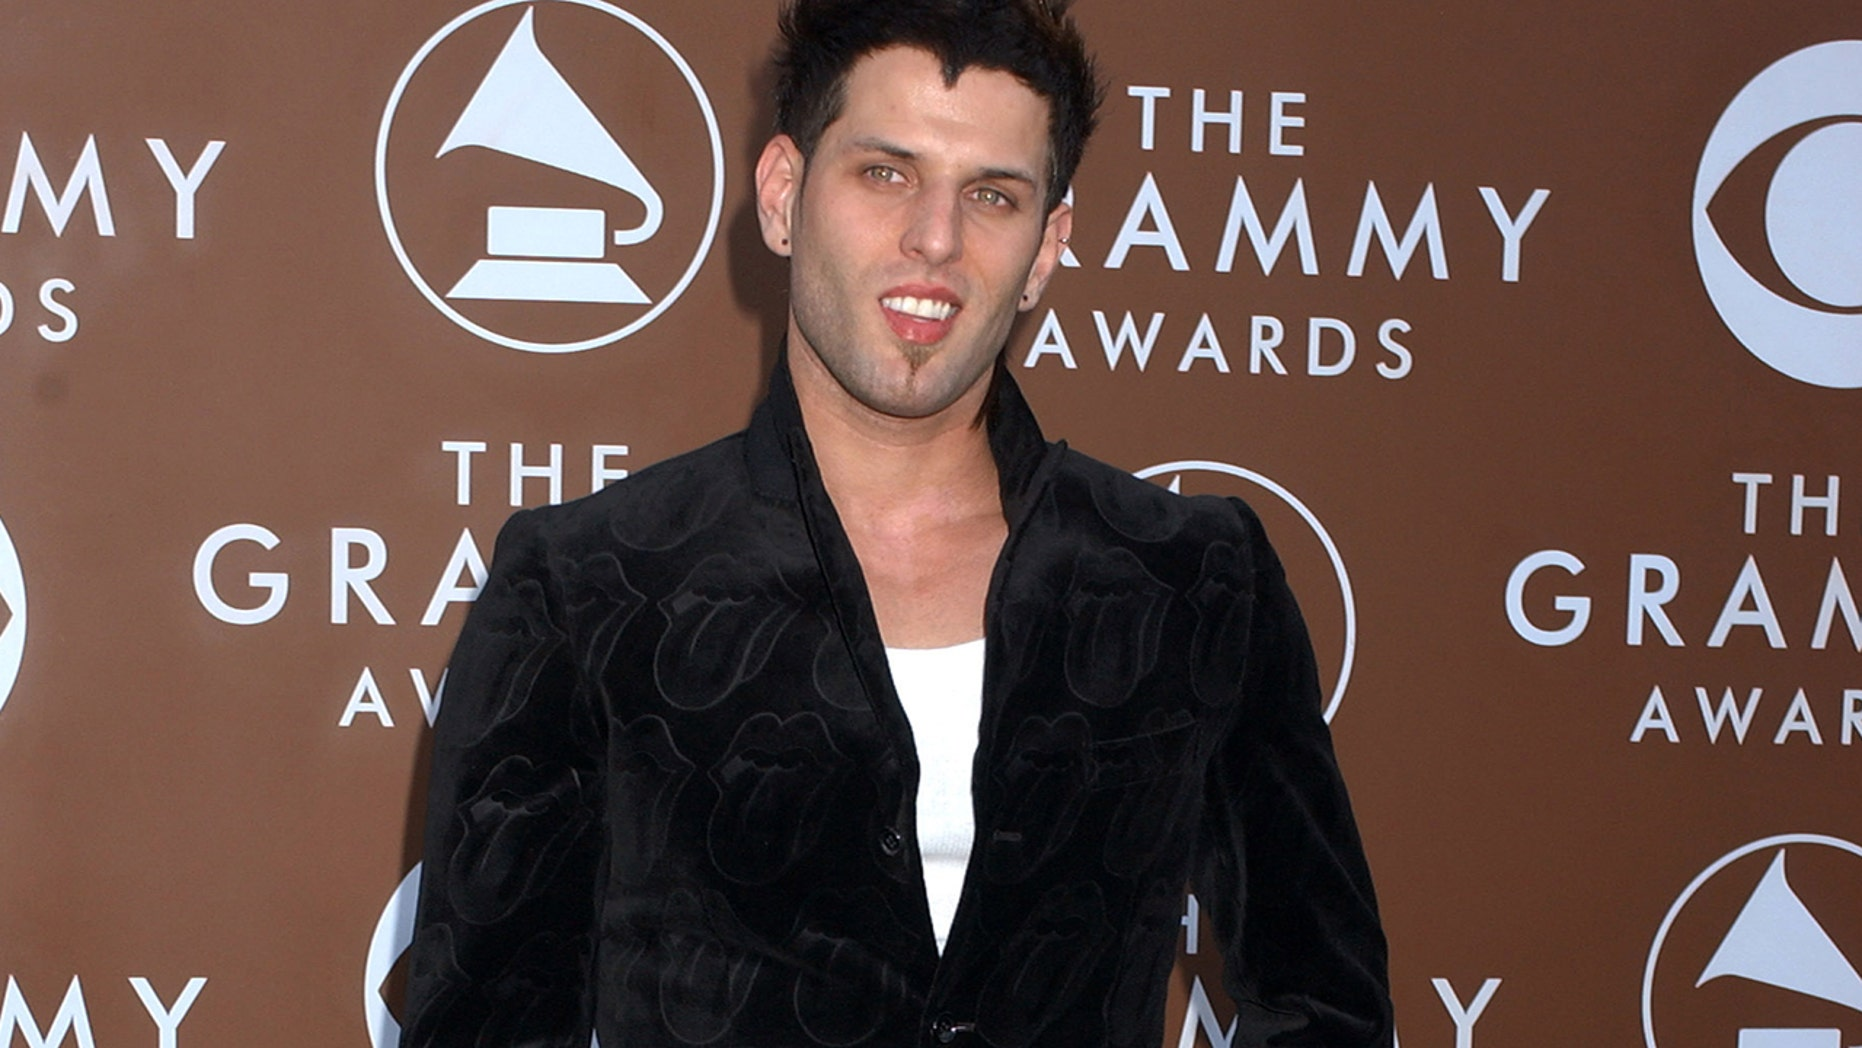 Devin Lima of LFO attended the 48th Annual Grammy Awards